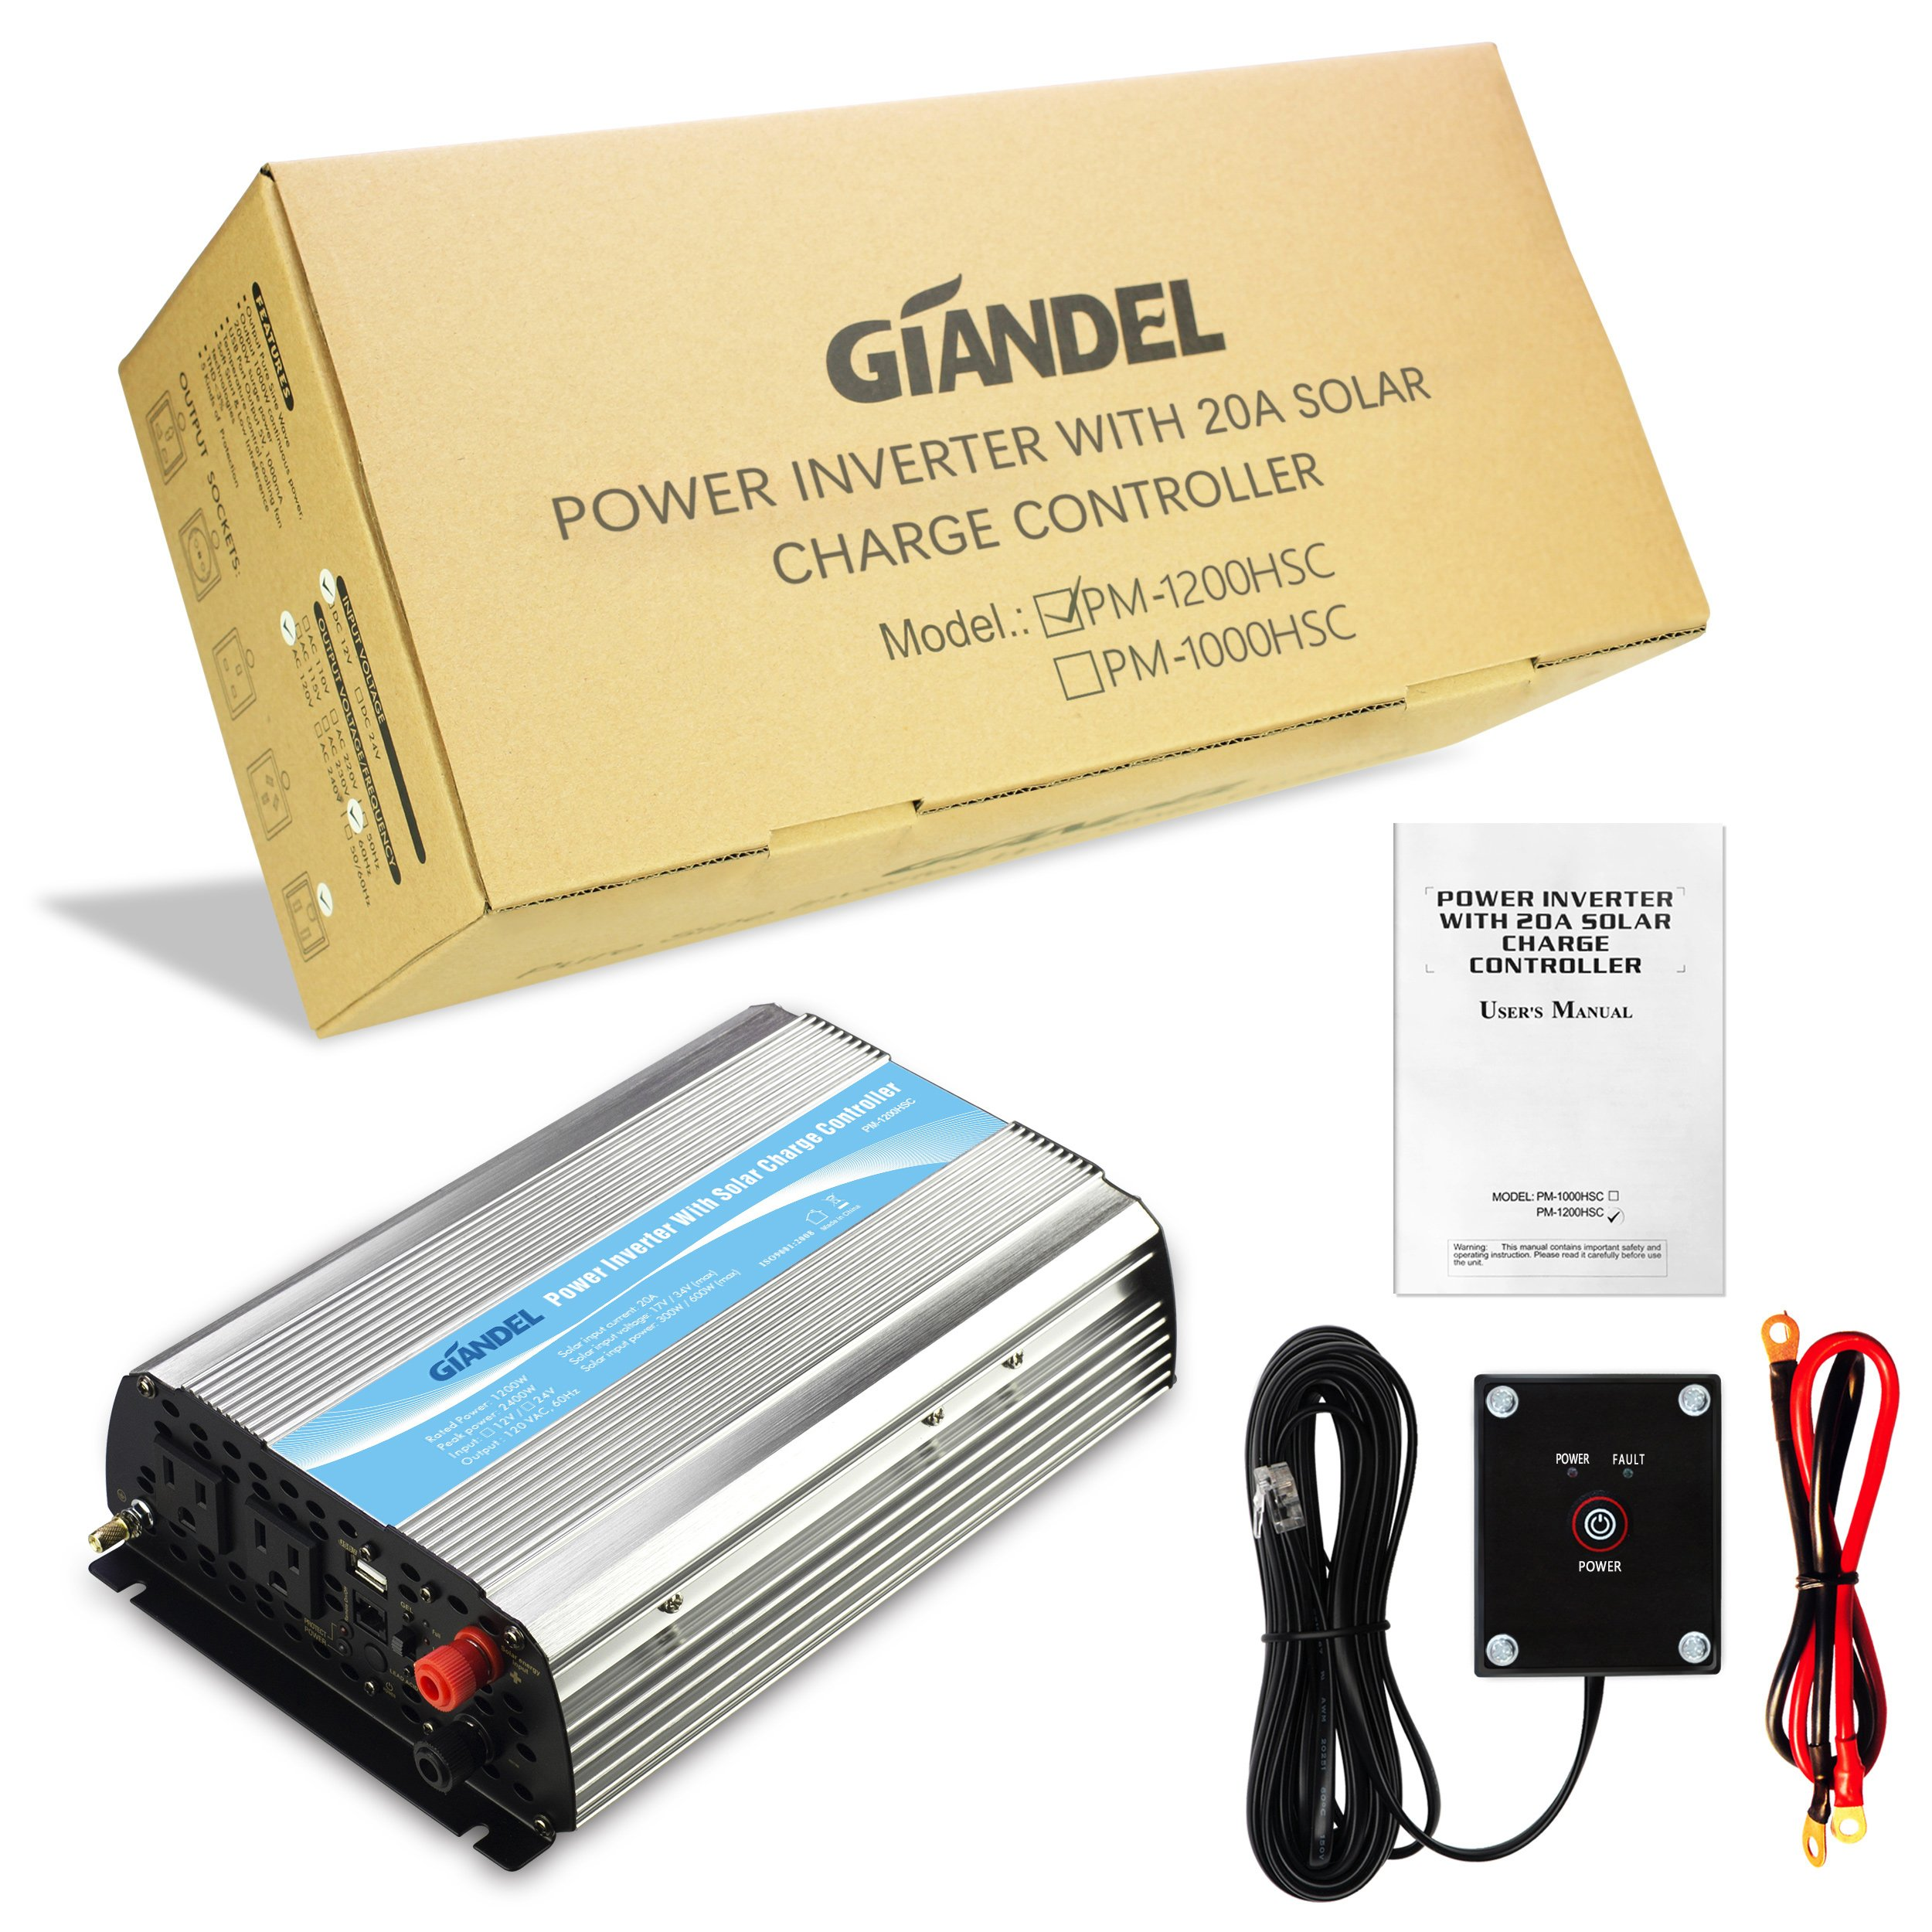 Giandel 1200Watt Power Inverter 12V DC to 110V 120V AC with 20A Solar Charge Controller Remote Control Dual AC Outlets & USB Port for RV Truck Solar System by Giandel (Image #5)